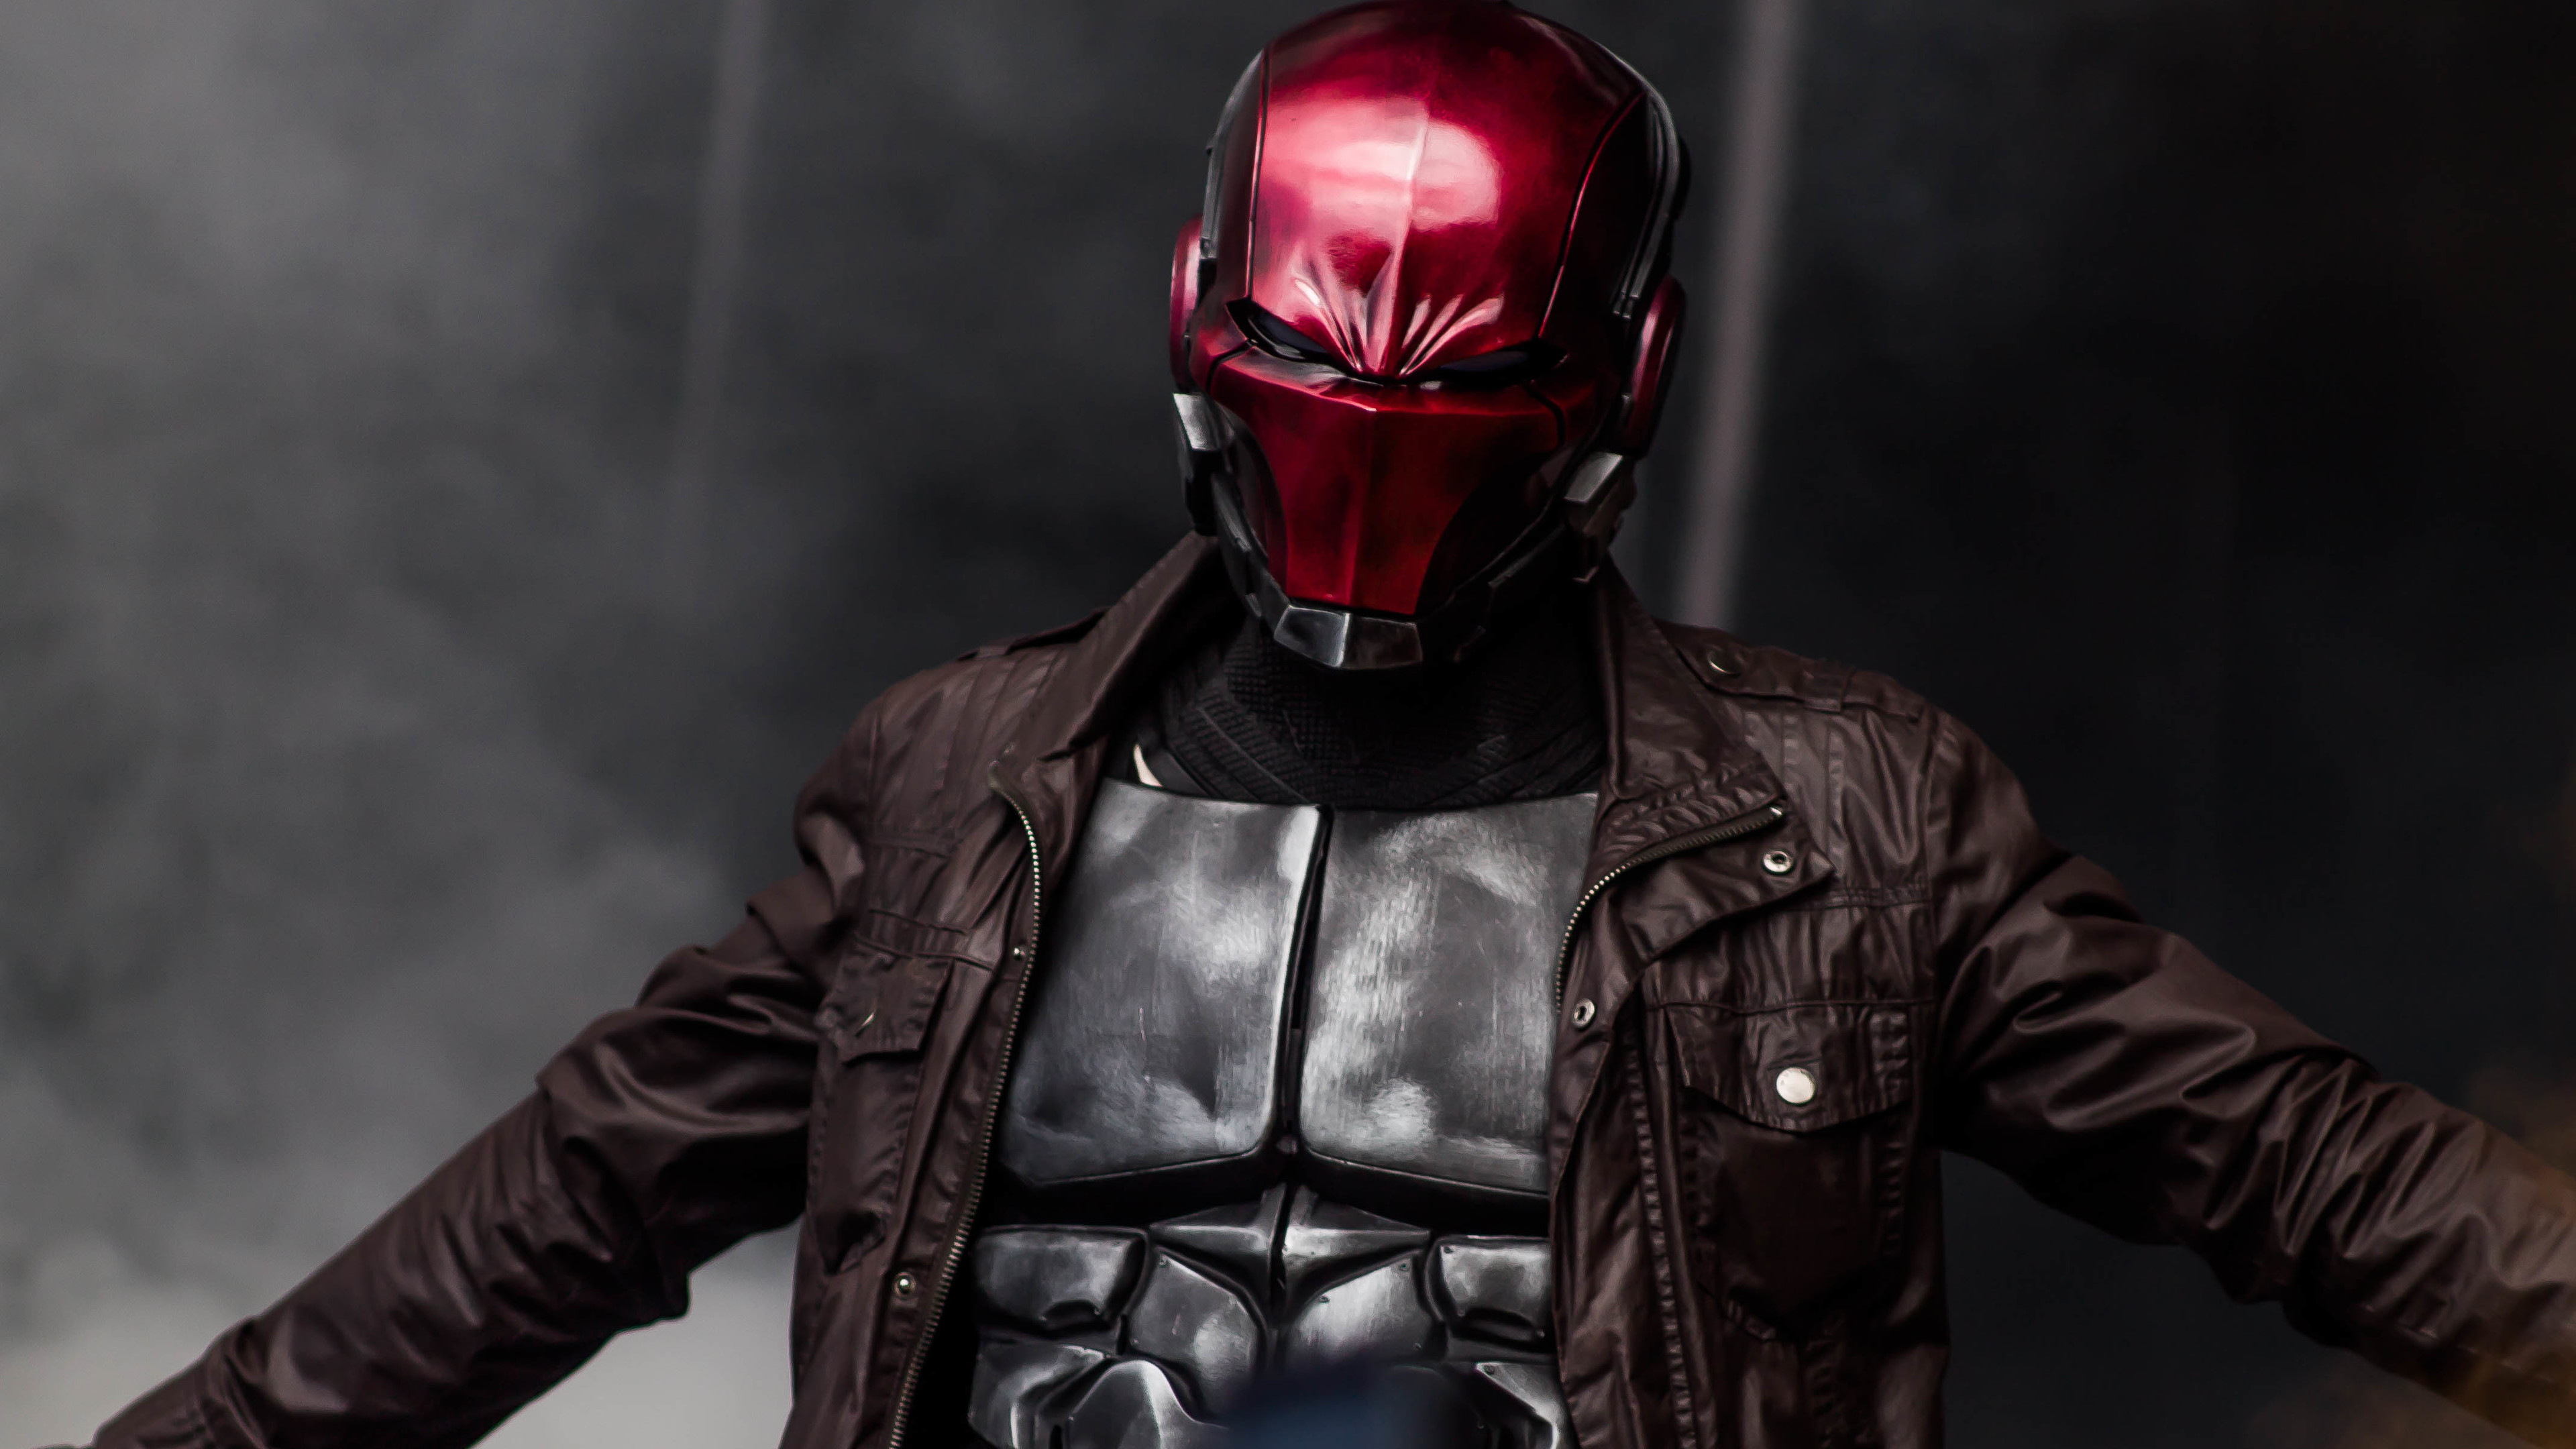 red hood cosplay 4k 1557260278 - Red Hood Cosplay 4k - superheroes wallpapers, red hood wallpapers, hd-wallpapers, deviantart wallpapers, cosplay wallpapers, 4k-wallpapers